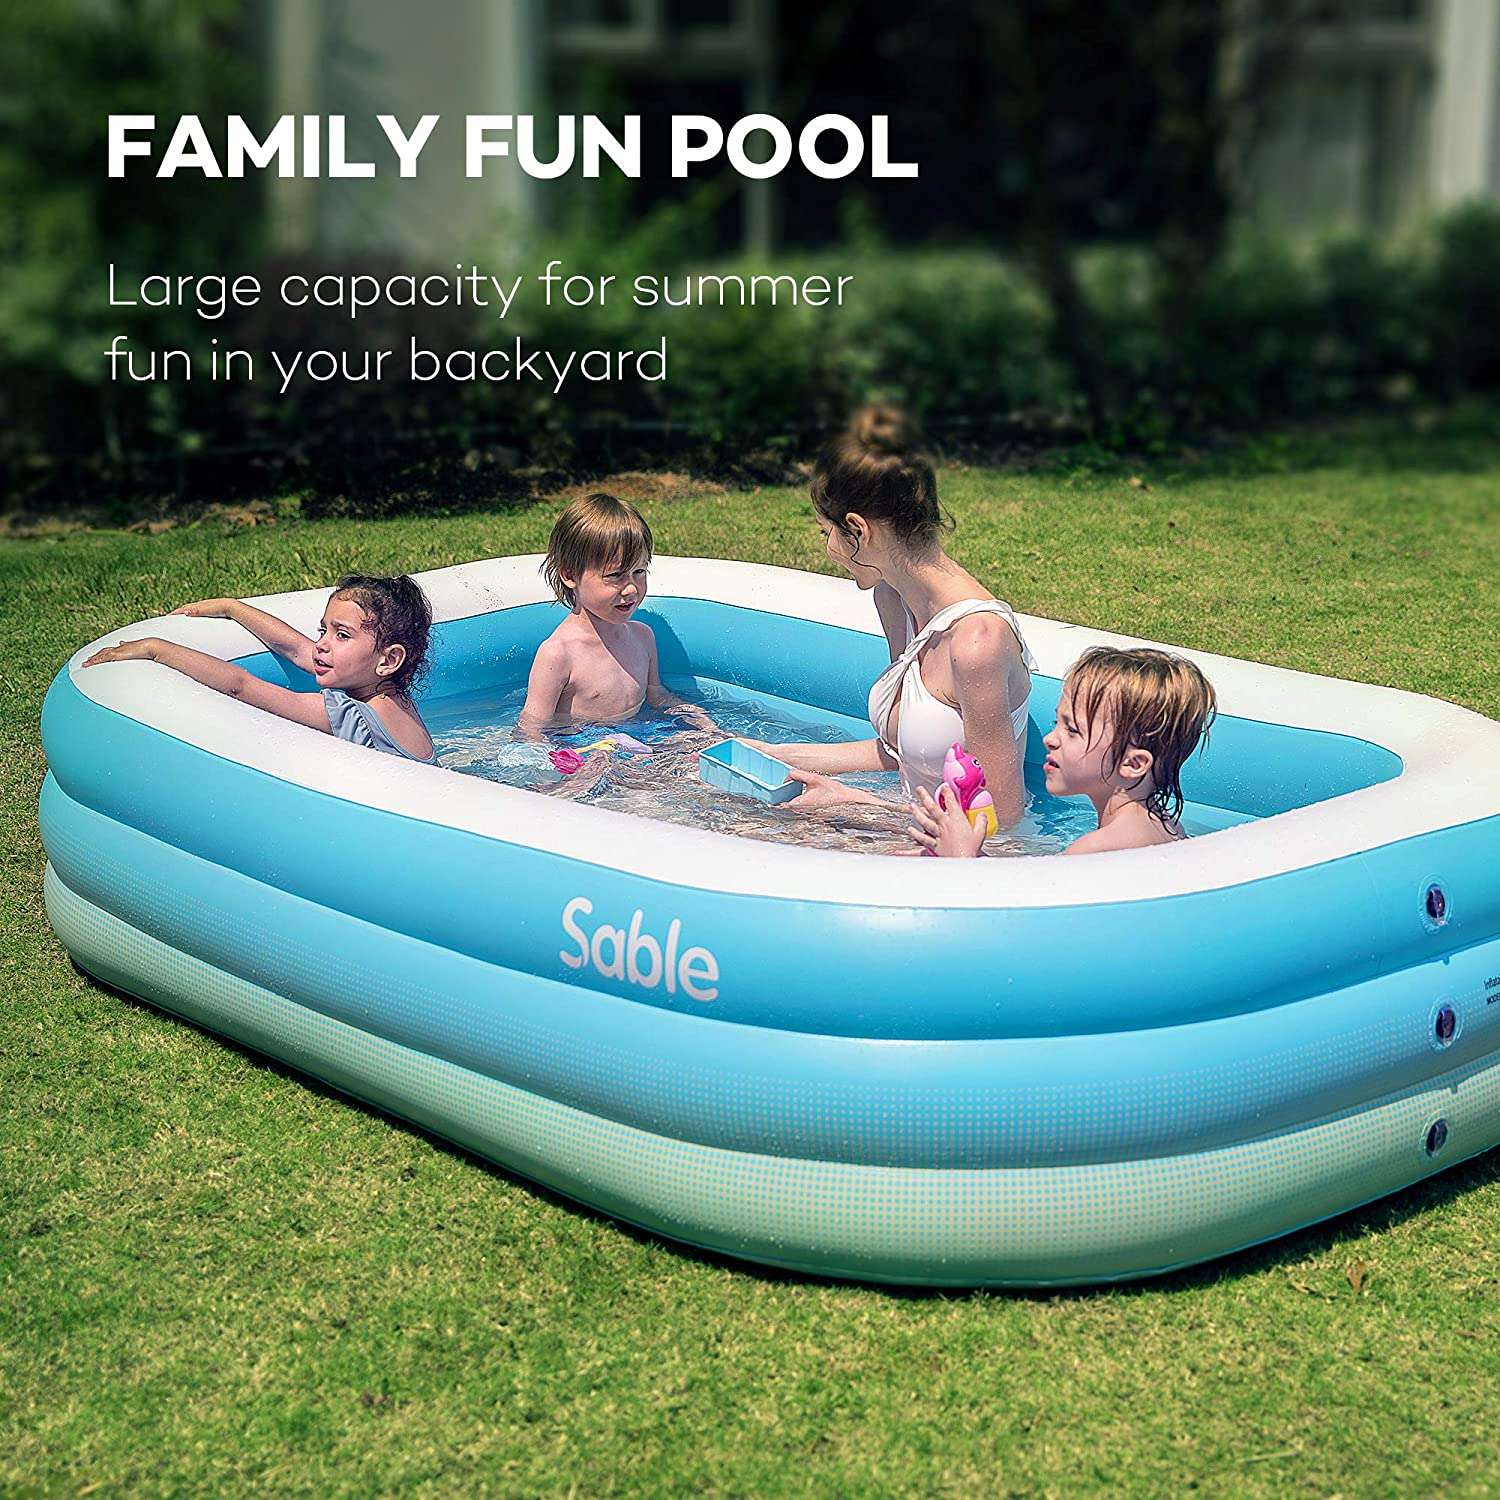 Sable Inflatable Pool, Blow up Kiddie Pool for Family ...